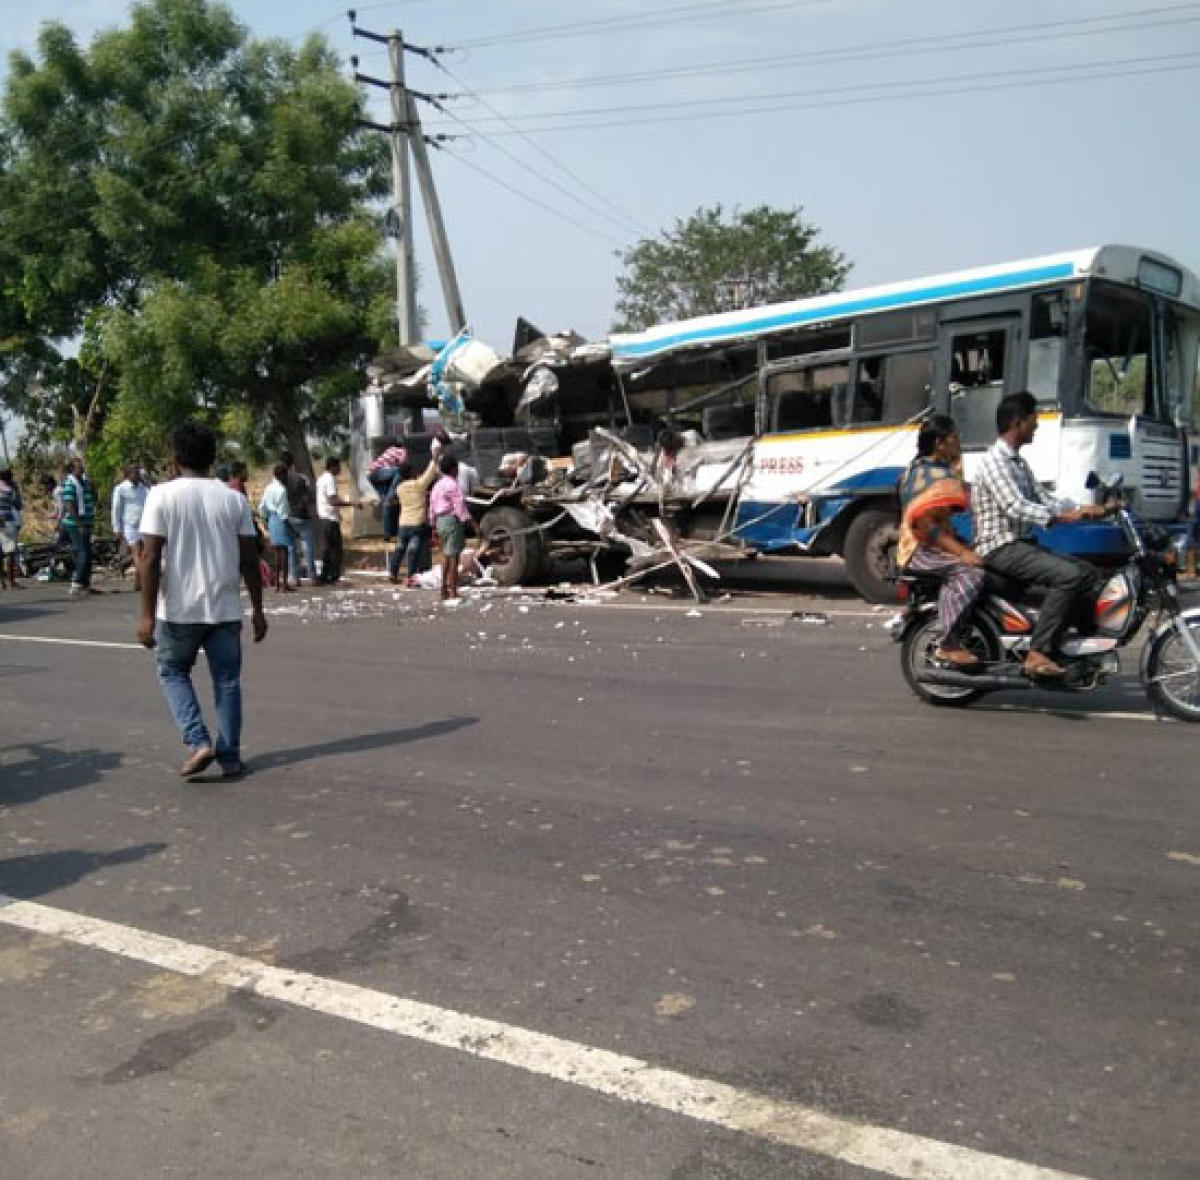 The mangled remains of the ill-fated TSRTC bus, near Karimnagar on Tuesday.